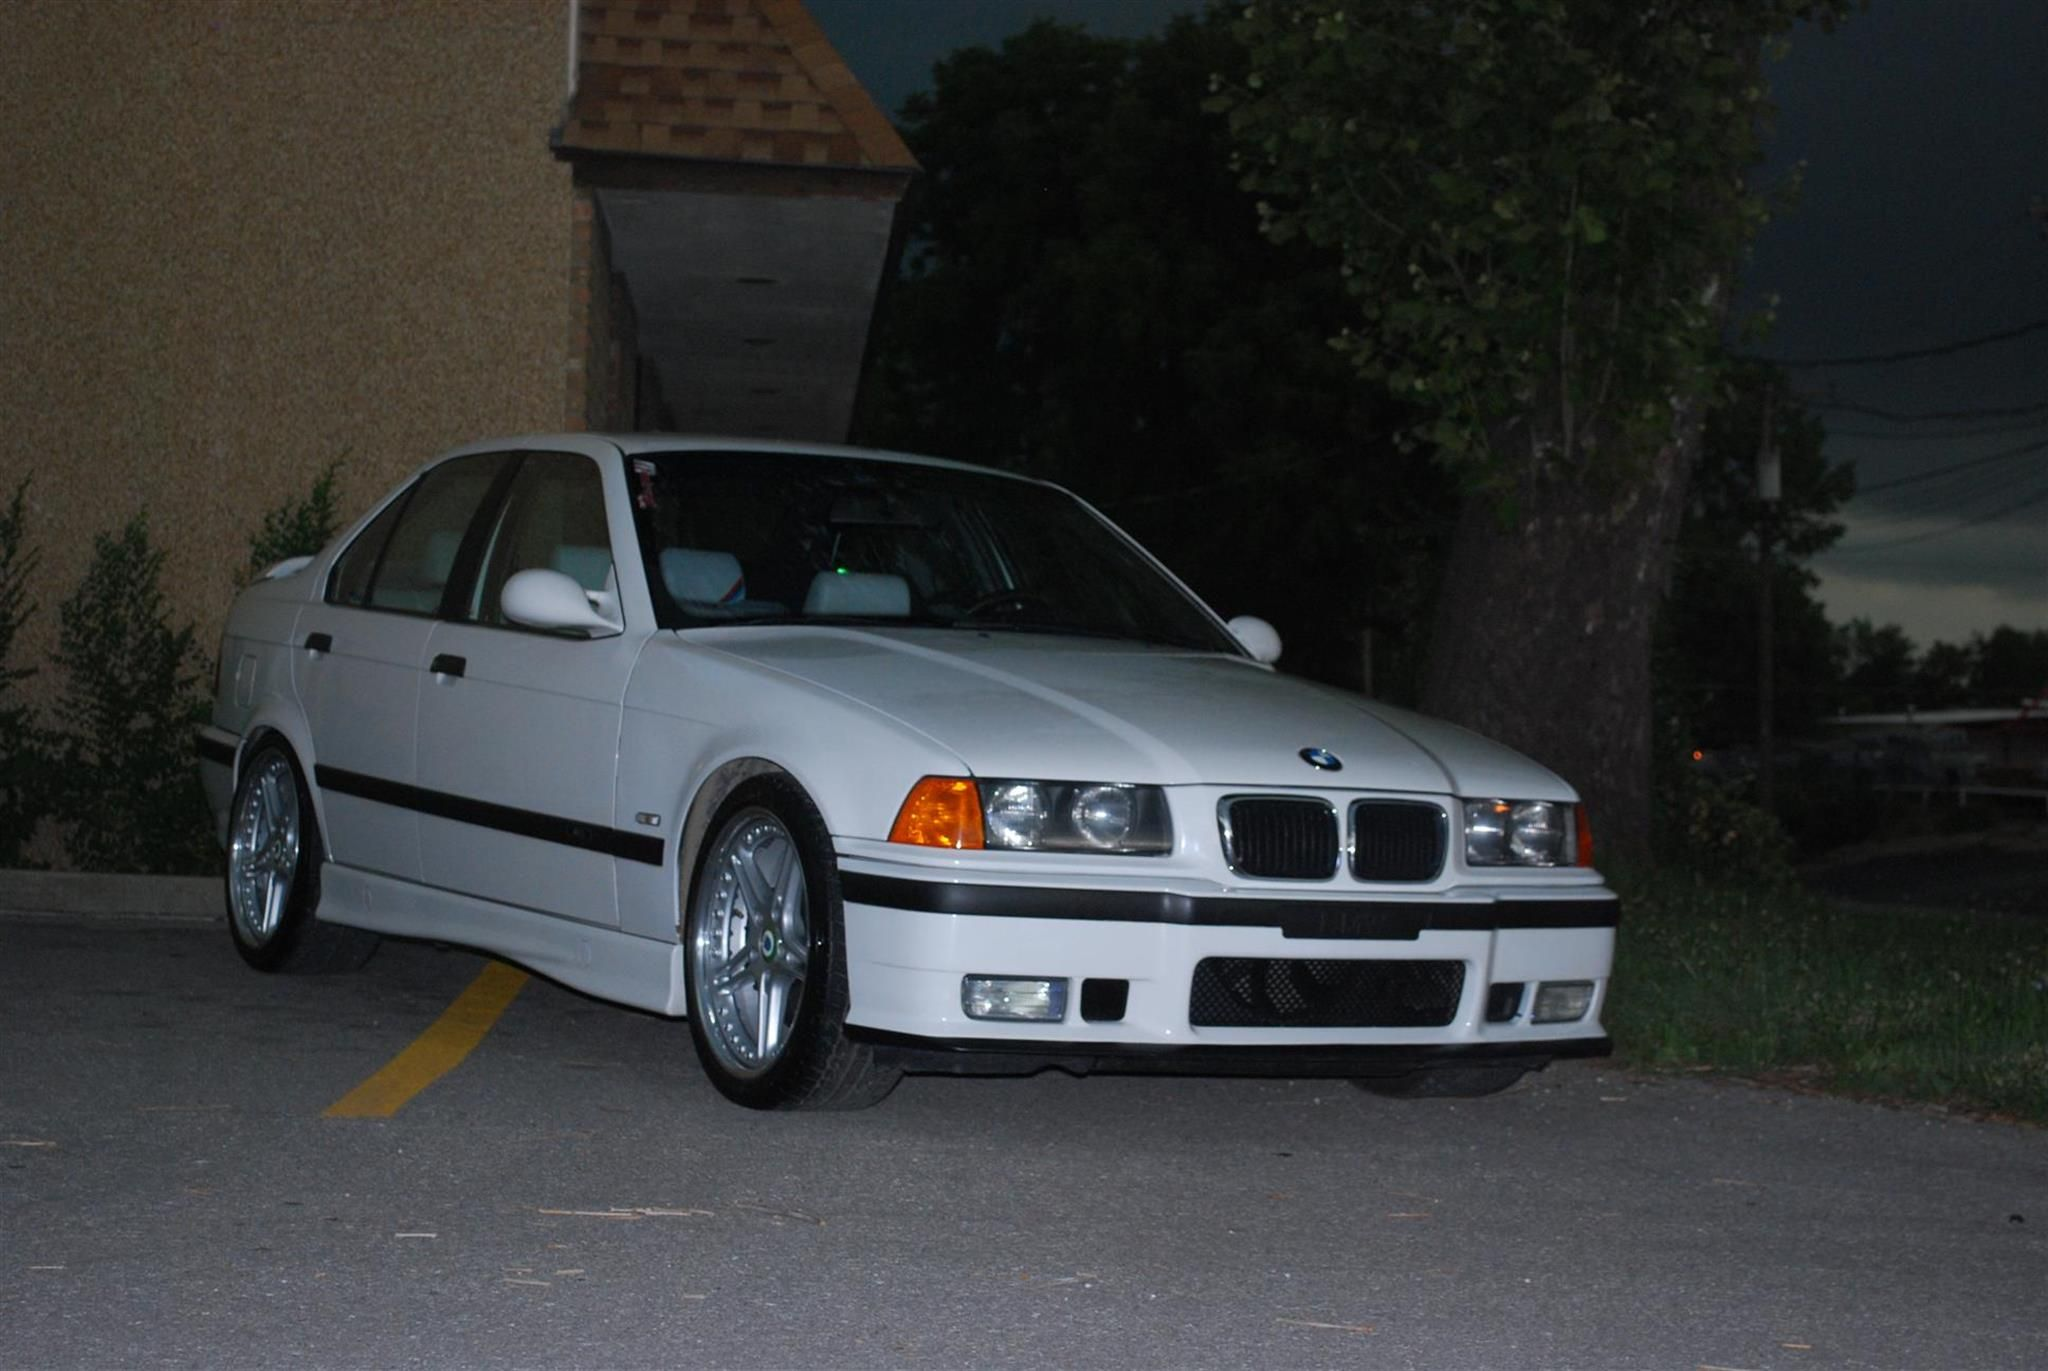 Big sue 1998 bmw m3 by modified by kc in kansas city click to view